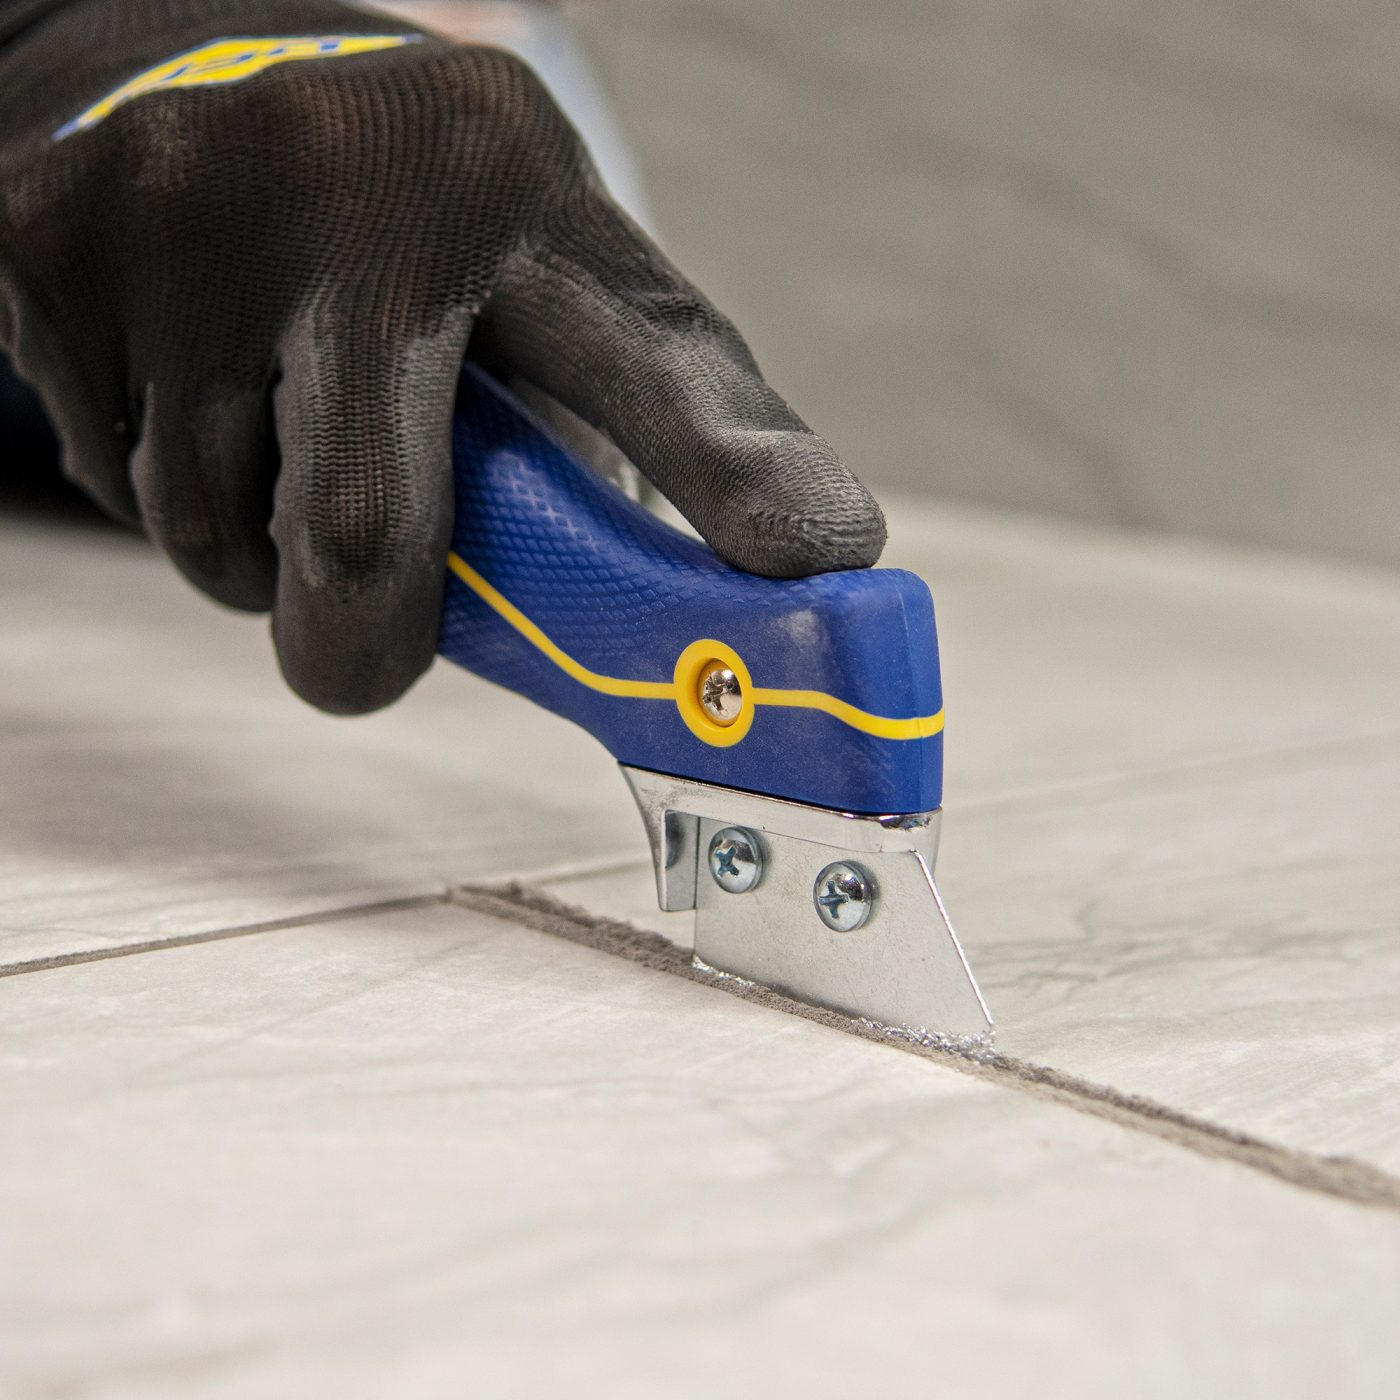 Pro Grout Saw